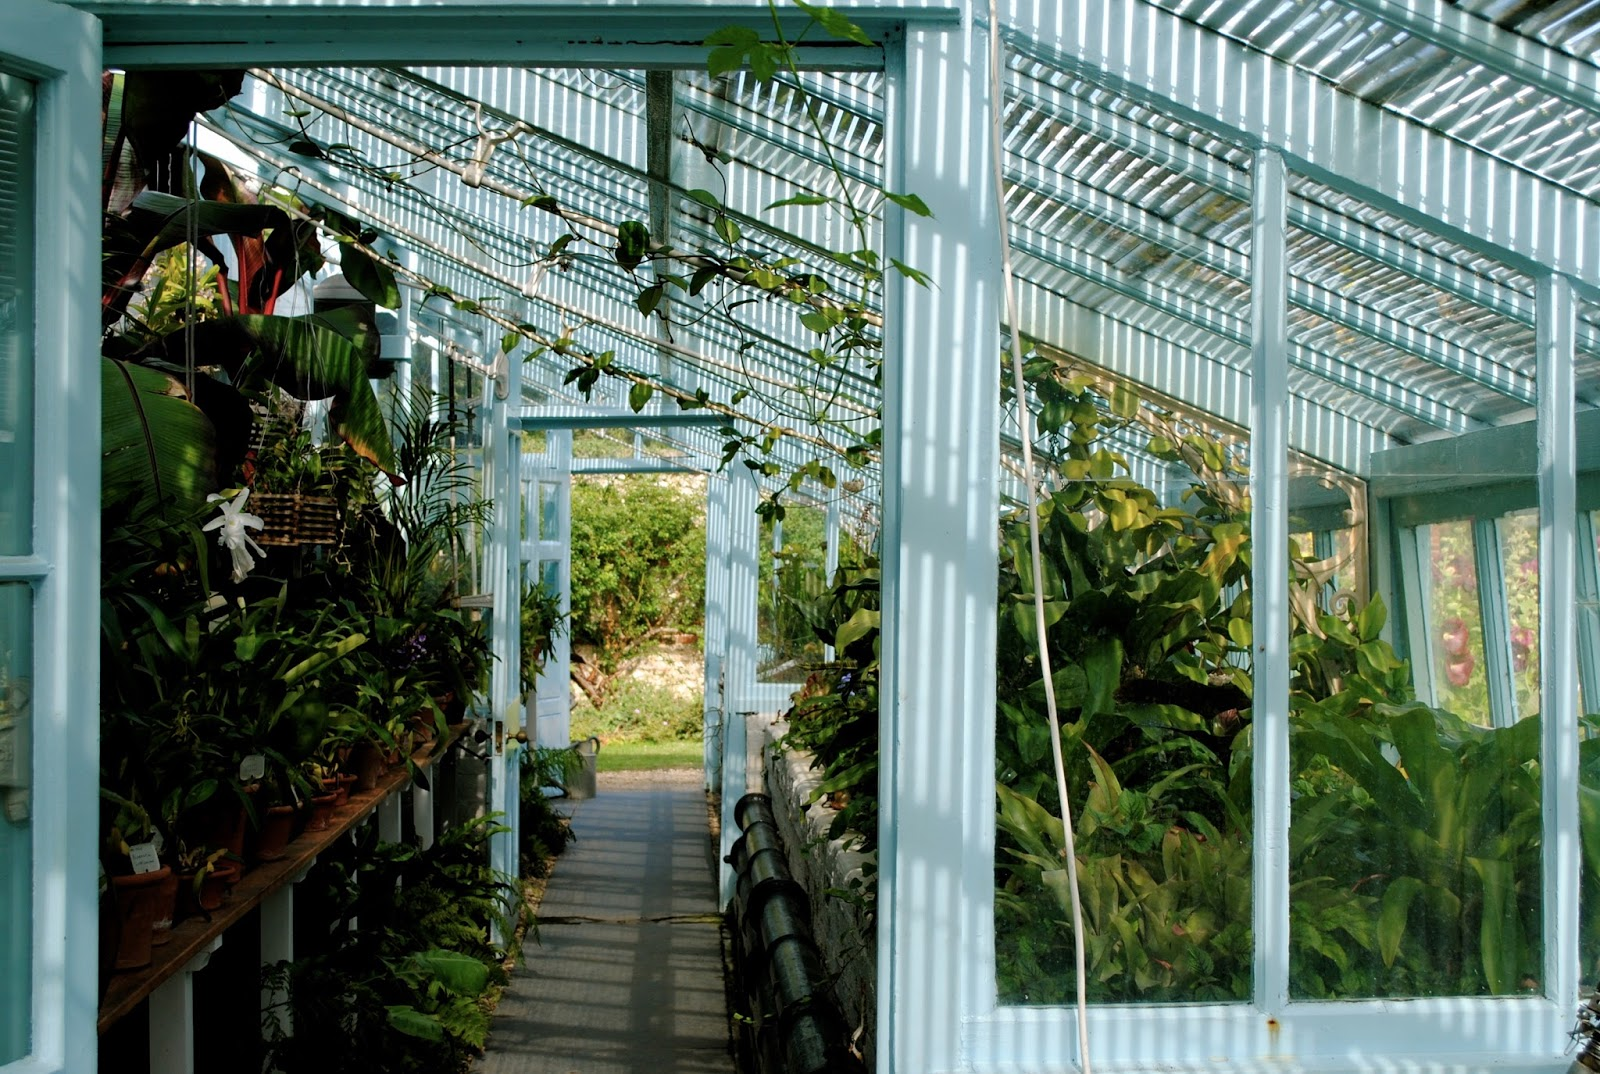 The Greenhouse of Charles Darwin at the Downe House in Kent England